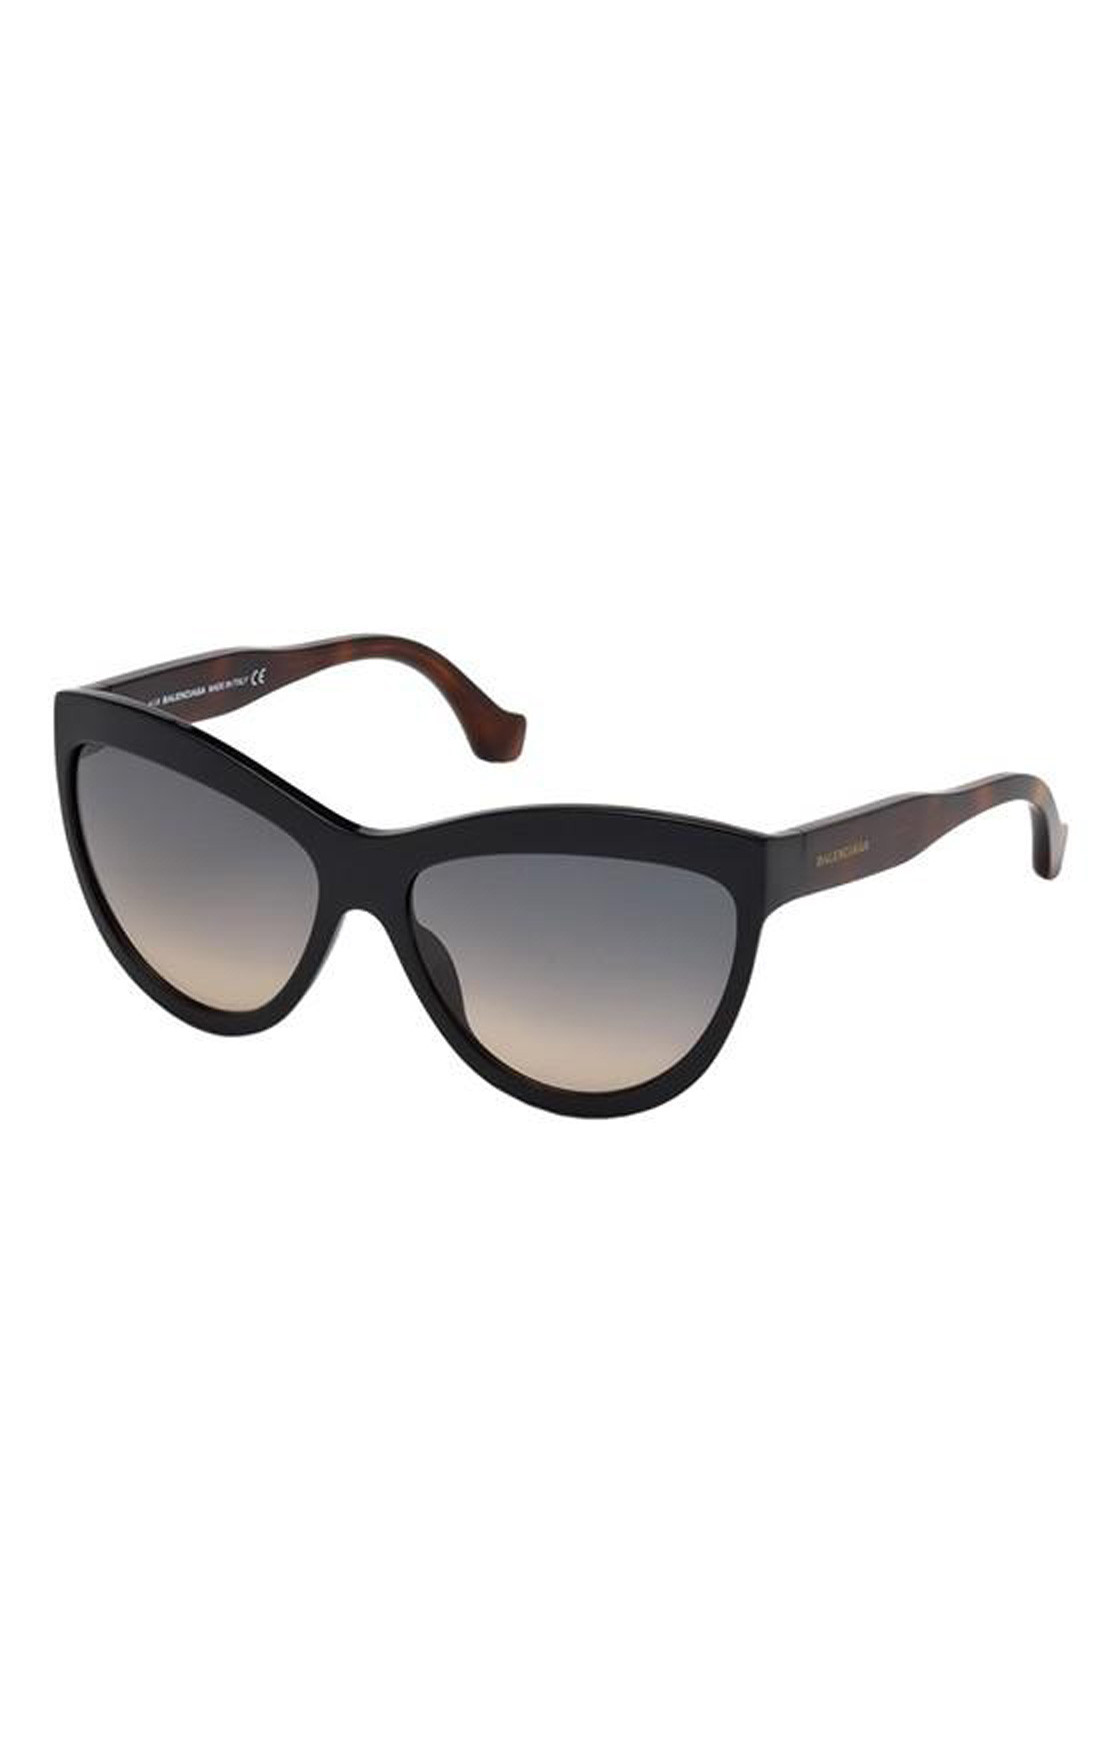 71b8f6030d1 Balenciaga - Black Havana Cat Eye Sunglasses (BA0090)